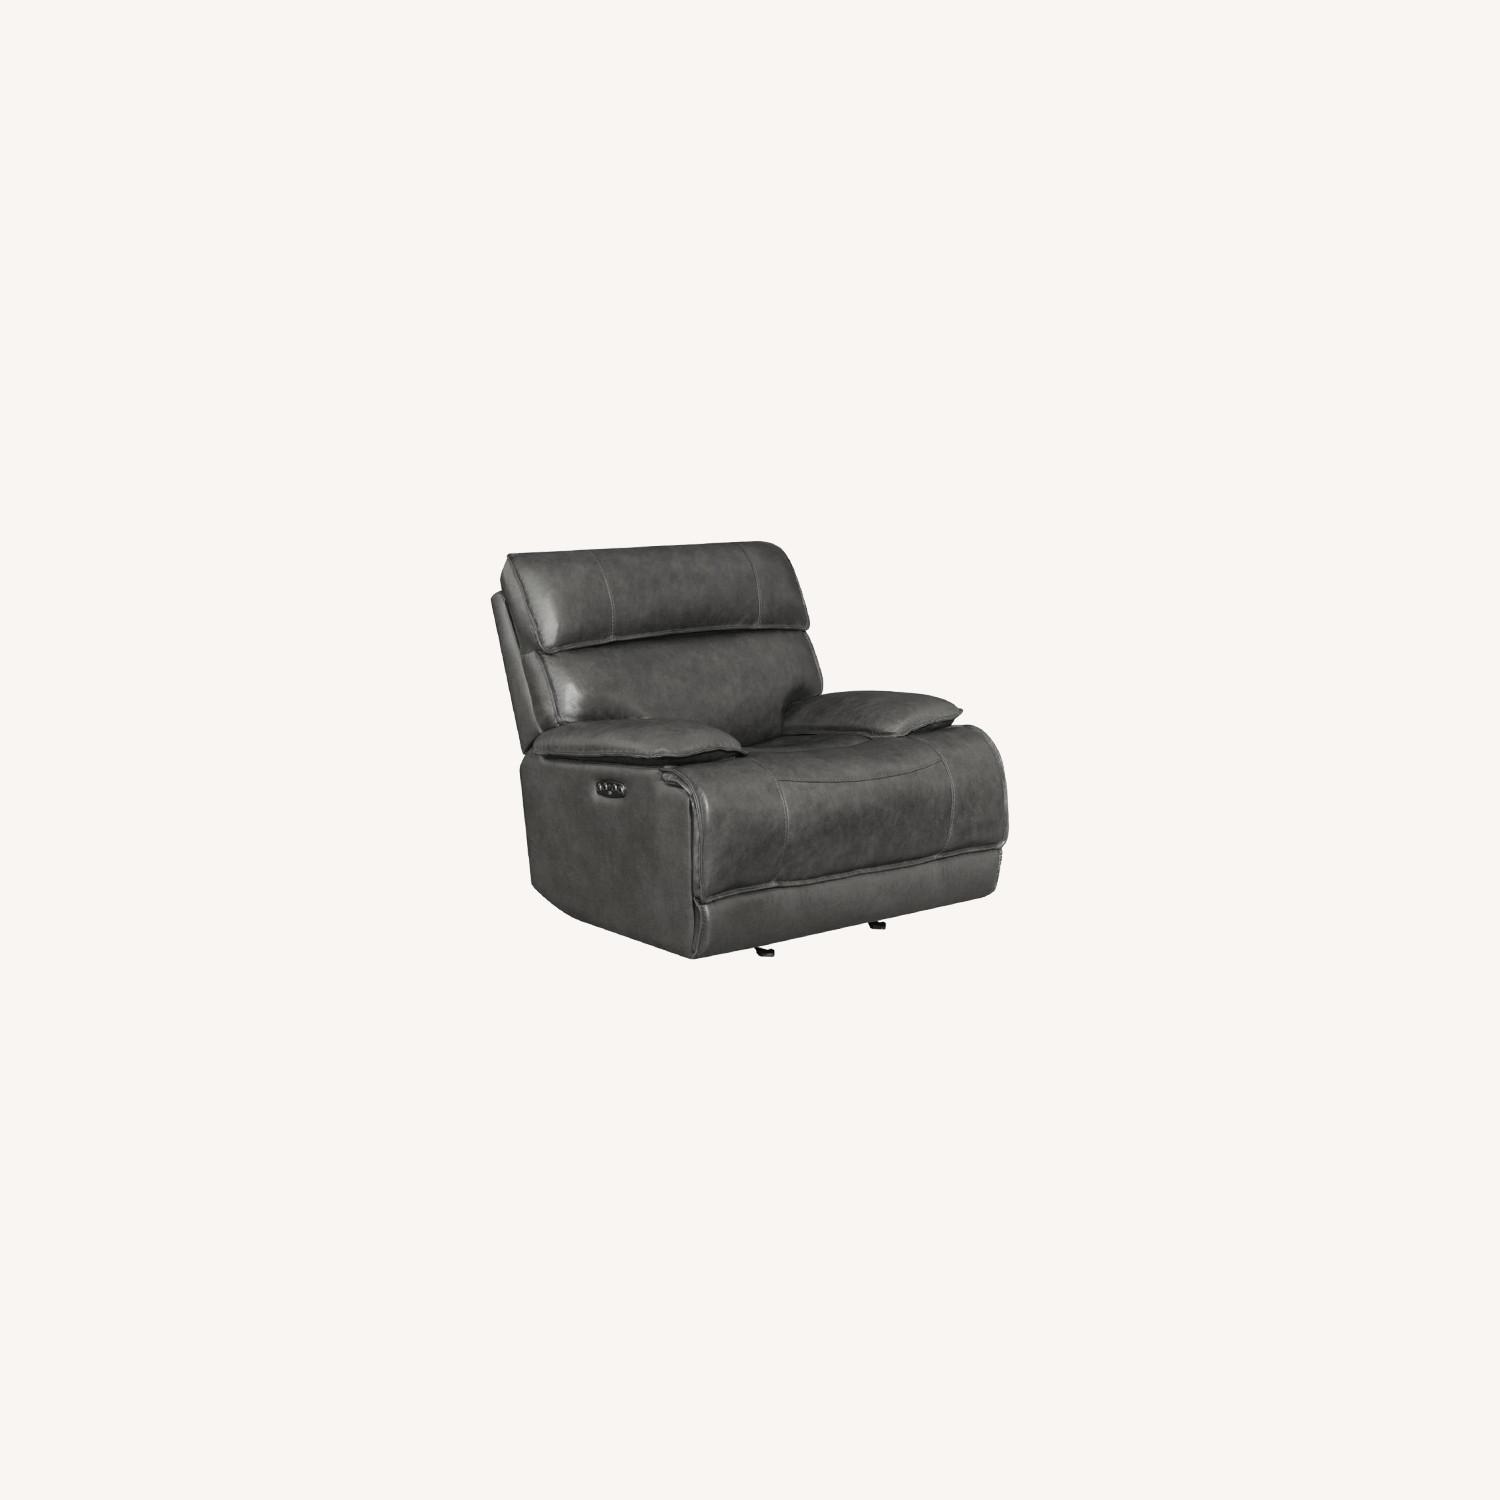 Power Glider Recliner In Charcoal Leather - image-10